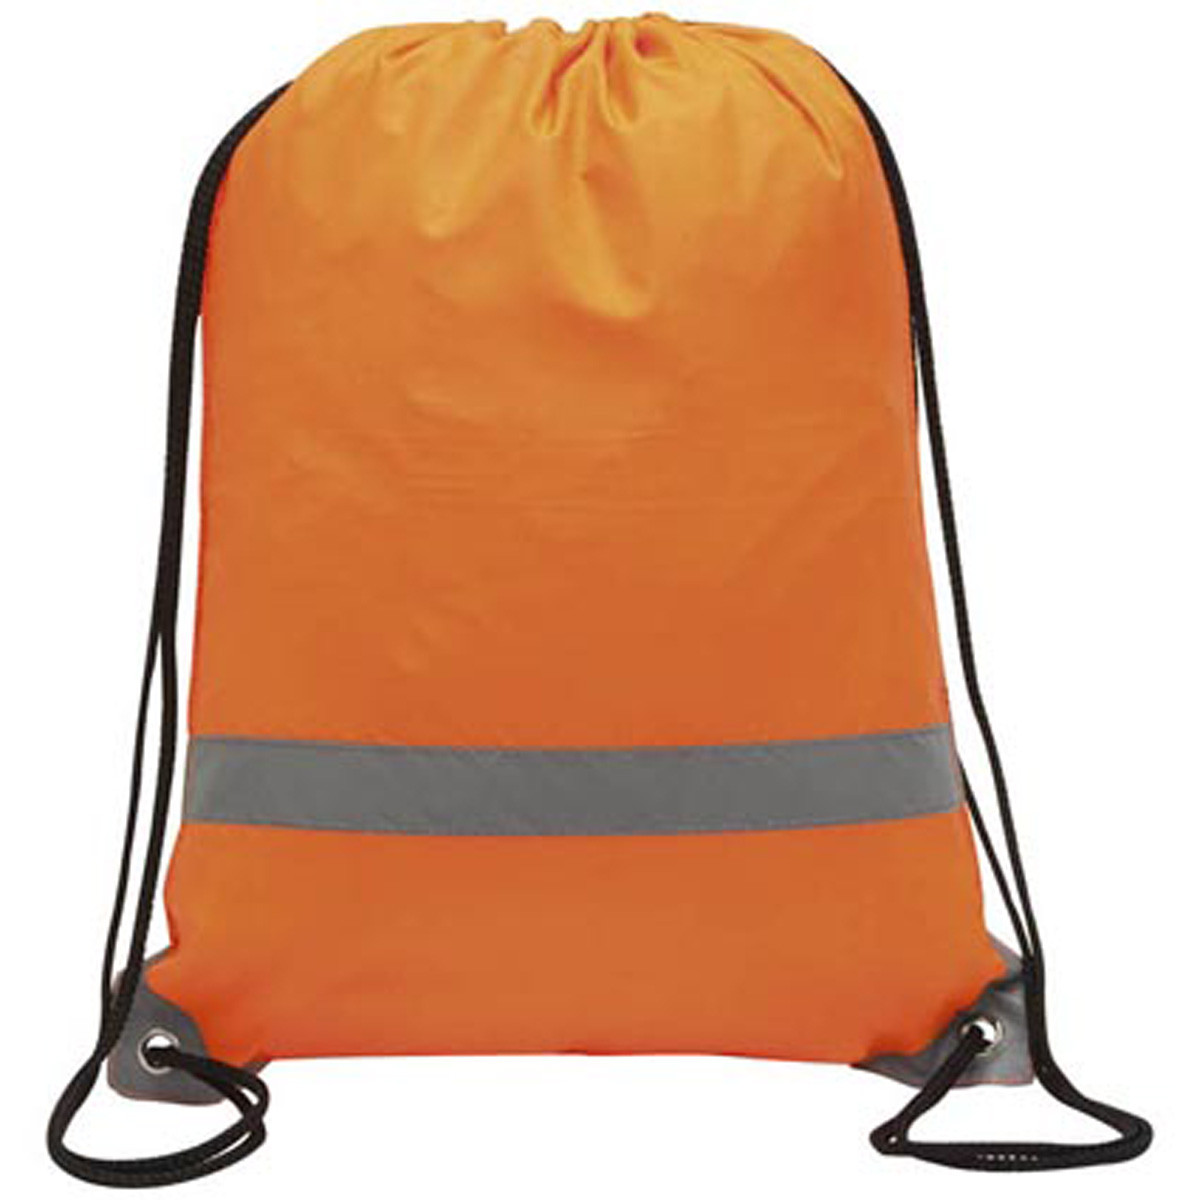 Nylon-Drawstring-Bag